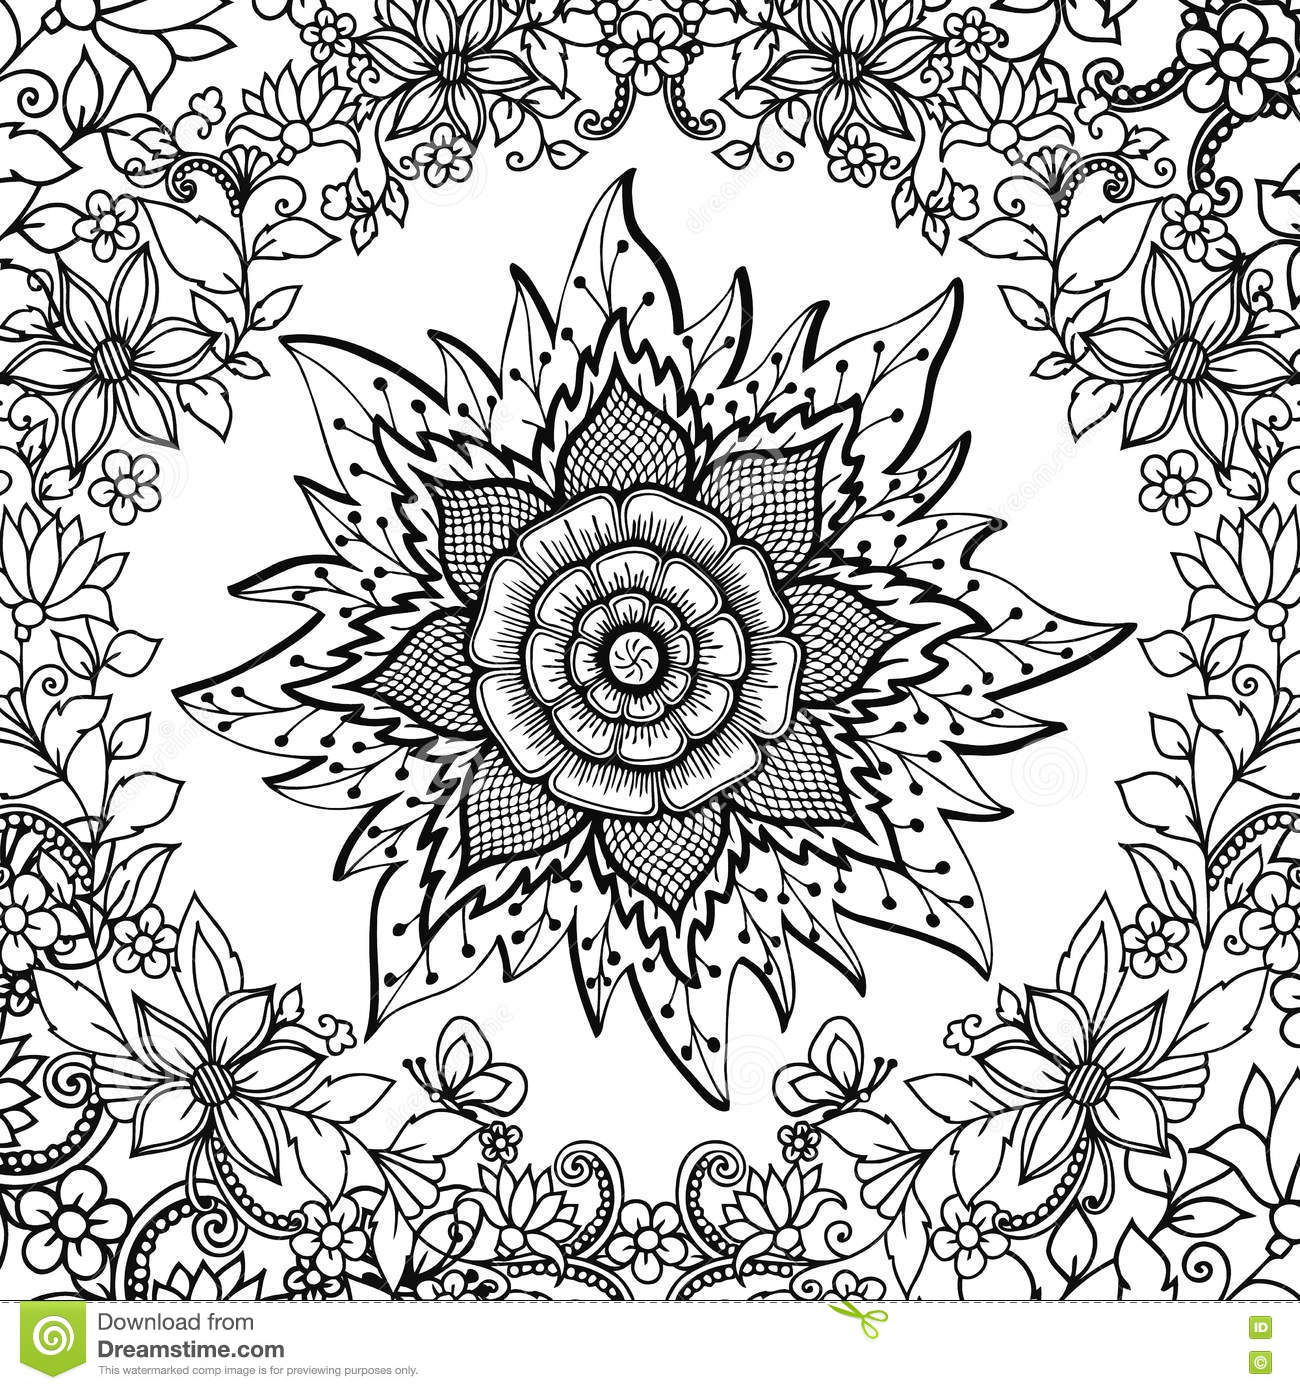 Verjaardagkado additionally Coloring Sheets 506 furthermore Charlie And Lola Coloring Pages together with Printable Coloring Pages Of Owls besides Best Friend Coloring Pages To Print. on free printable coloring pages for adults